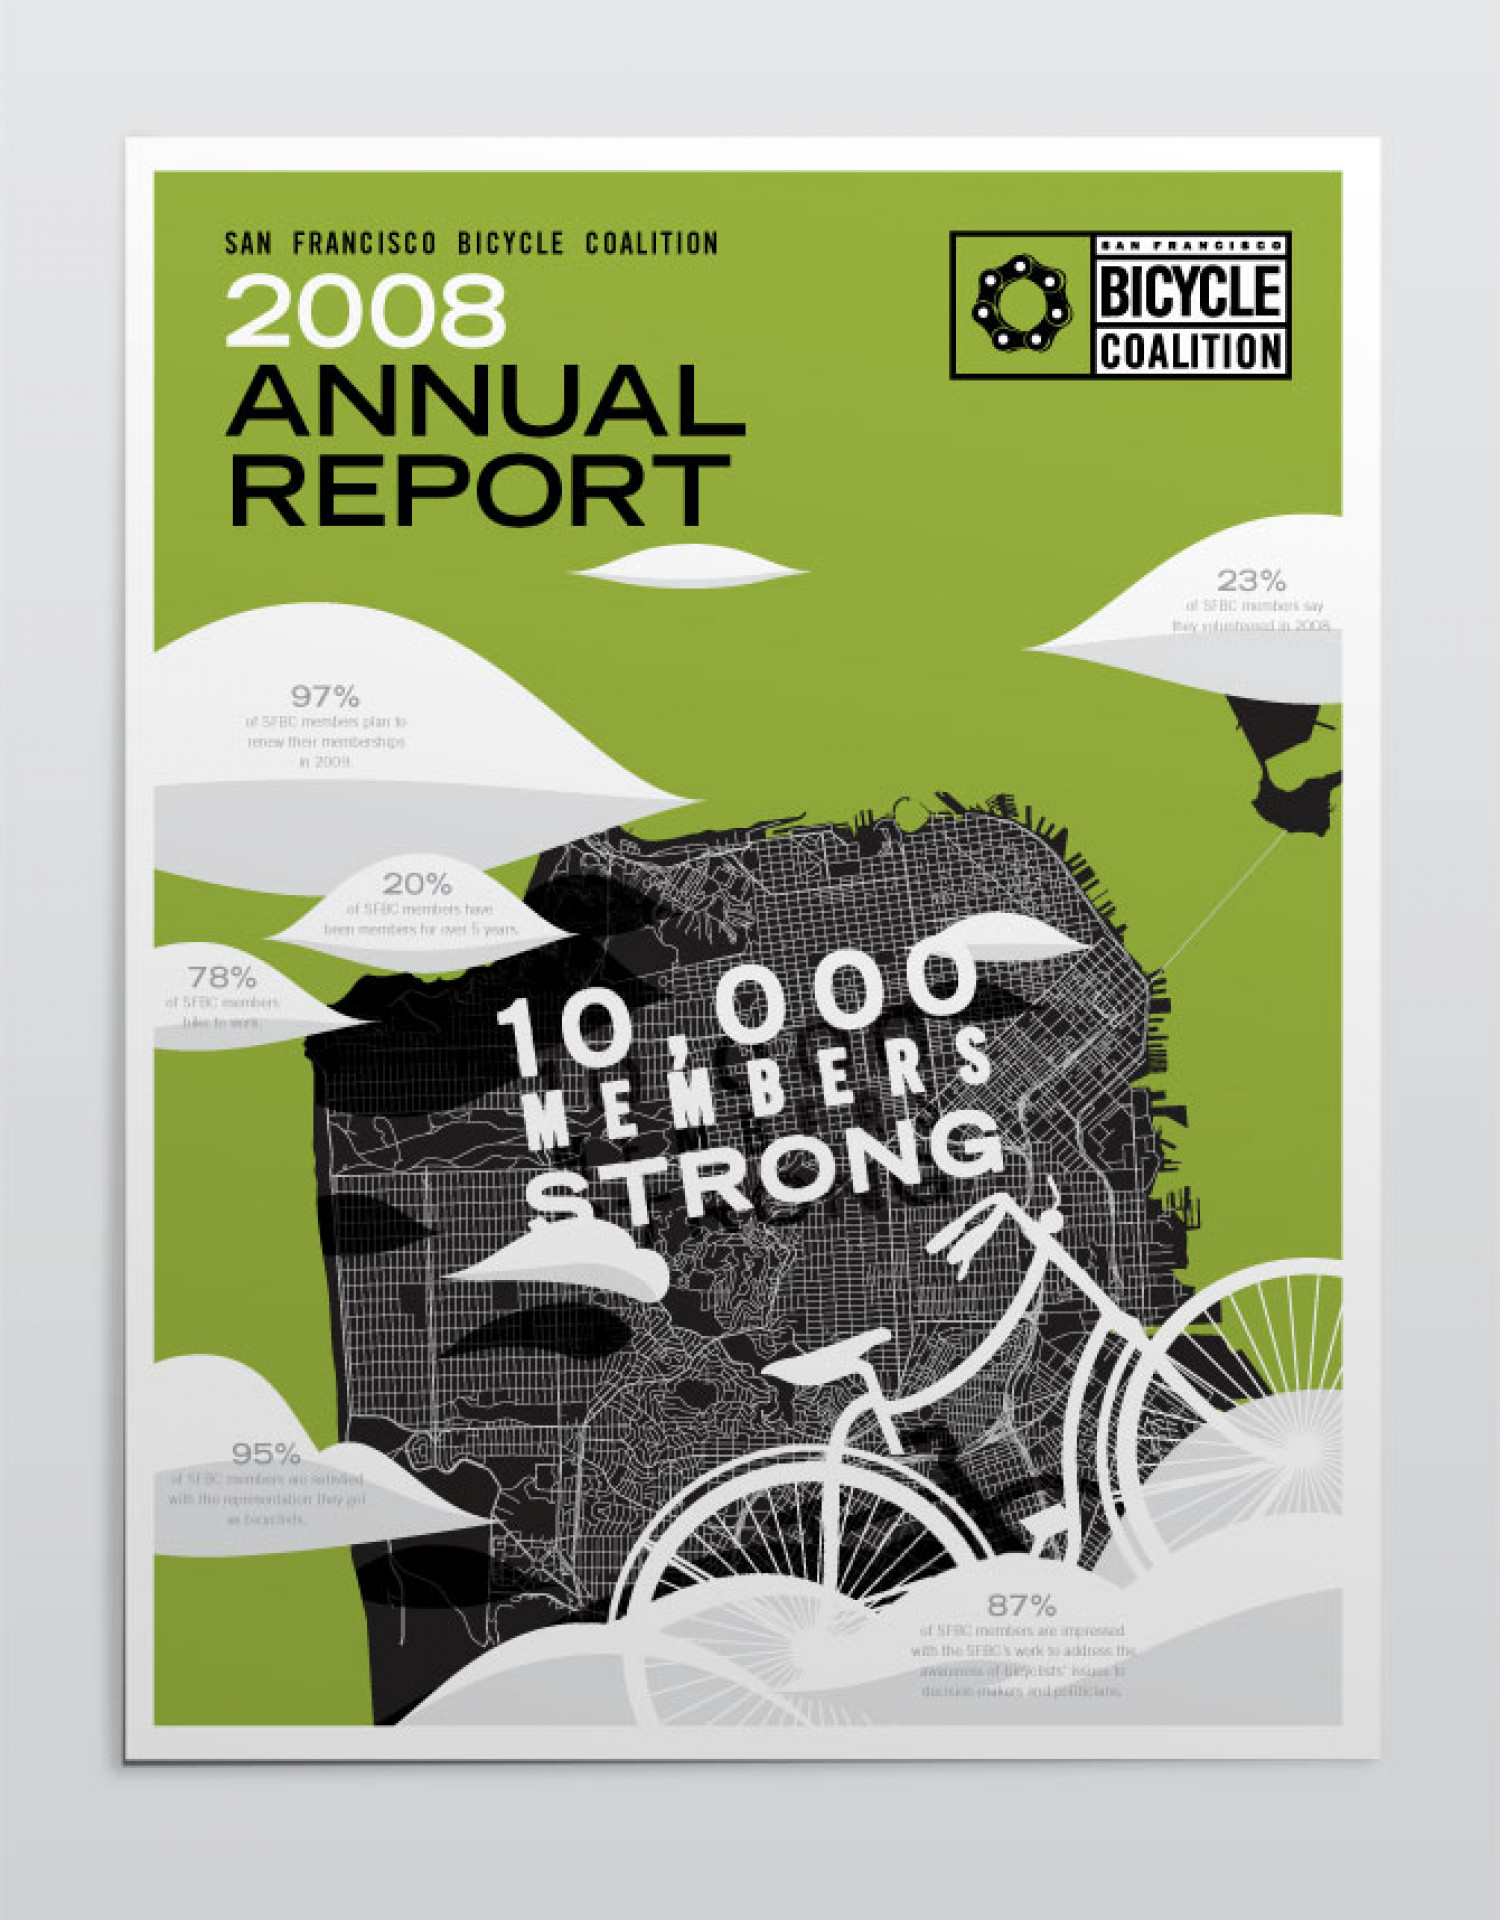 SFBC Annual Report Infographic